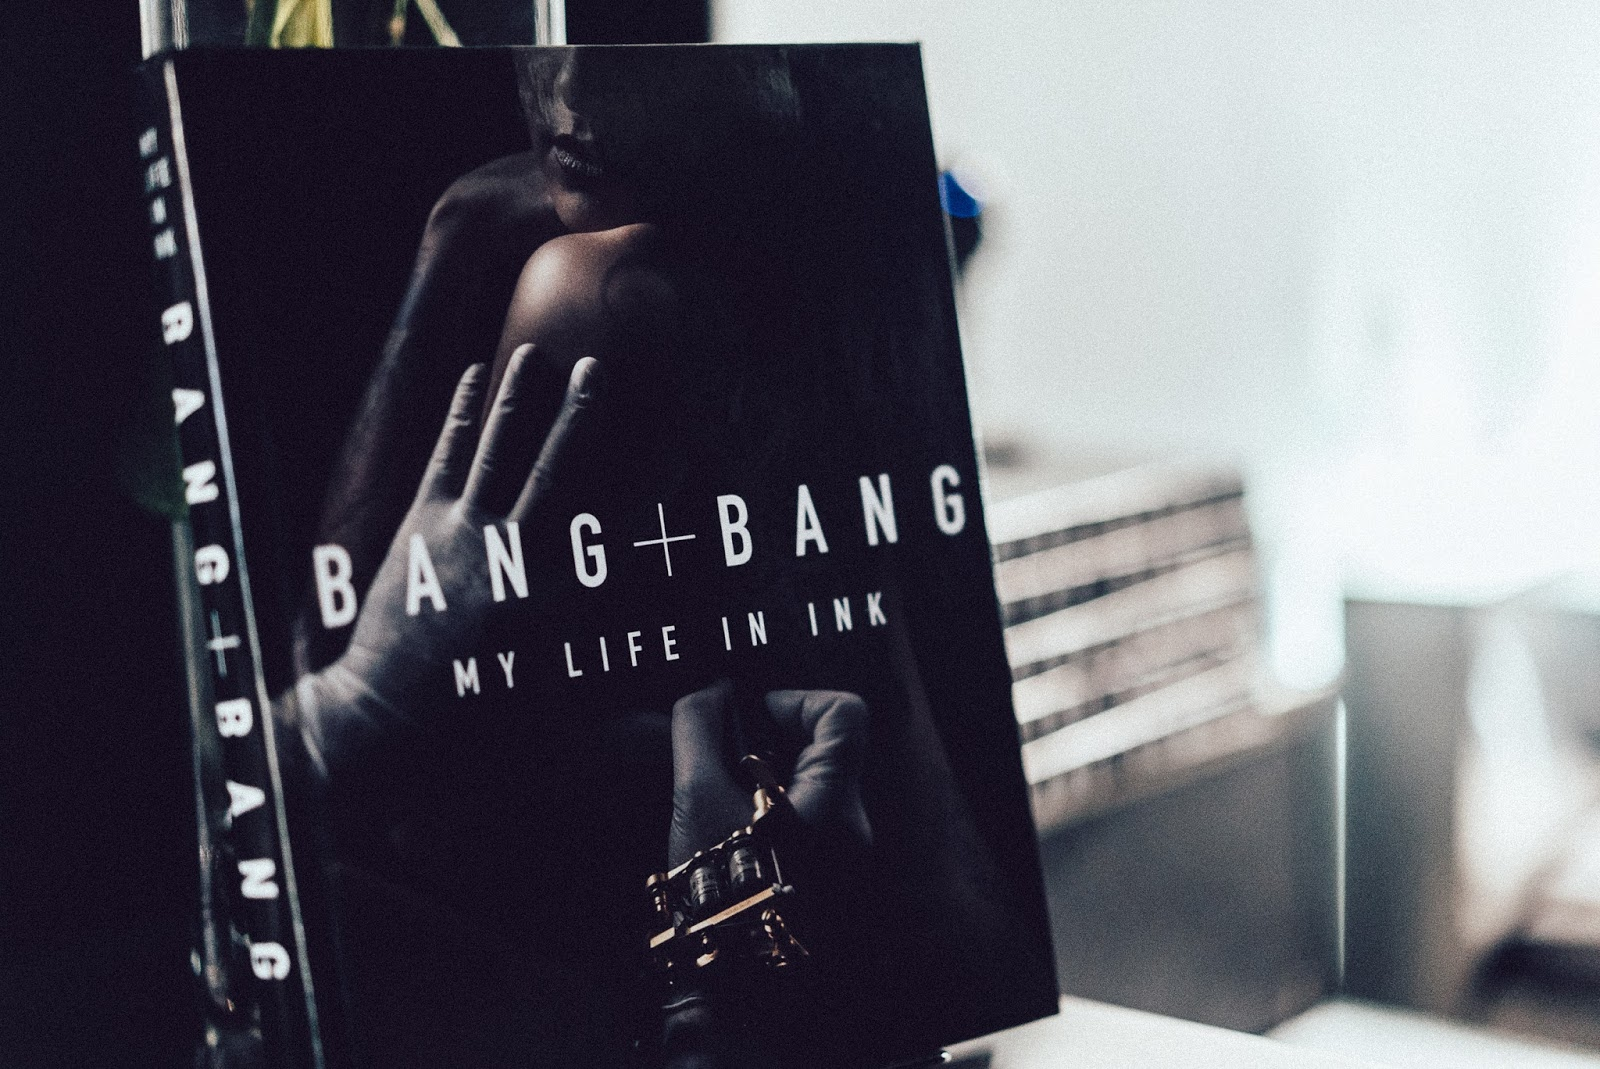 Bang bang tattoo in new york smithankyou lifestyle for Thin line tattoo artists near me